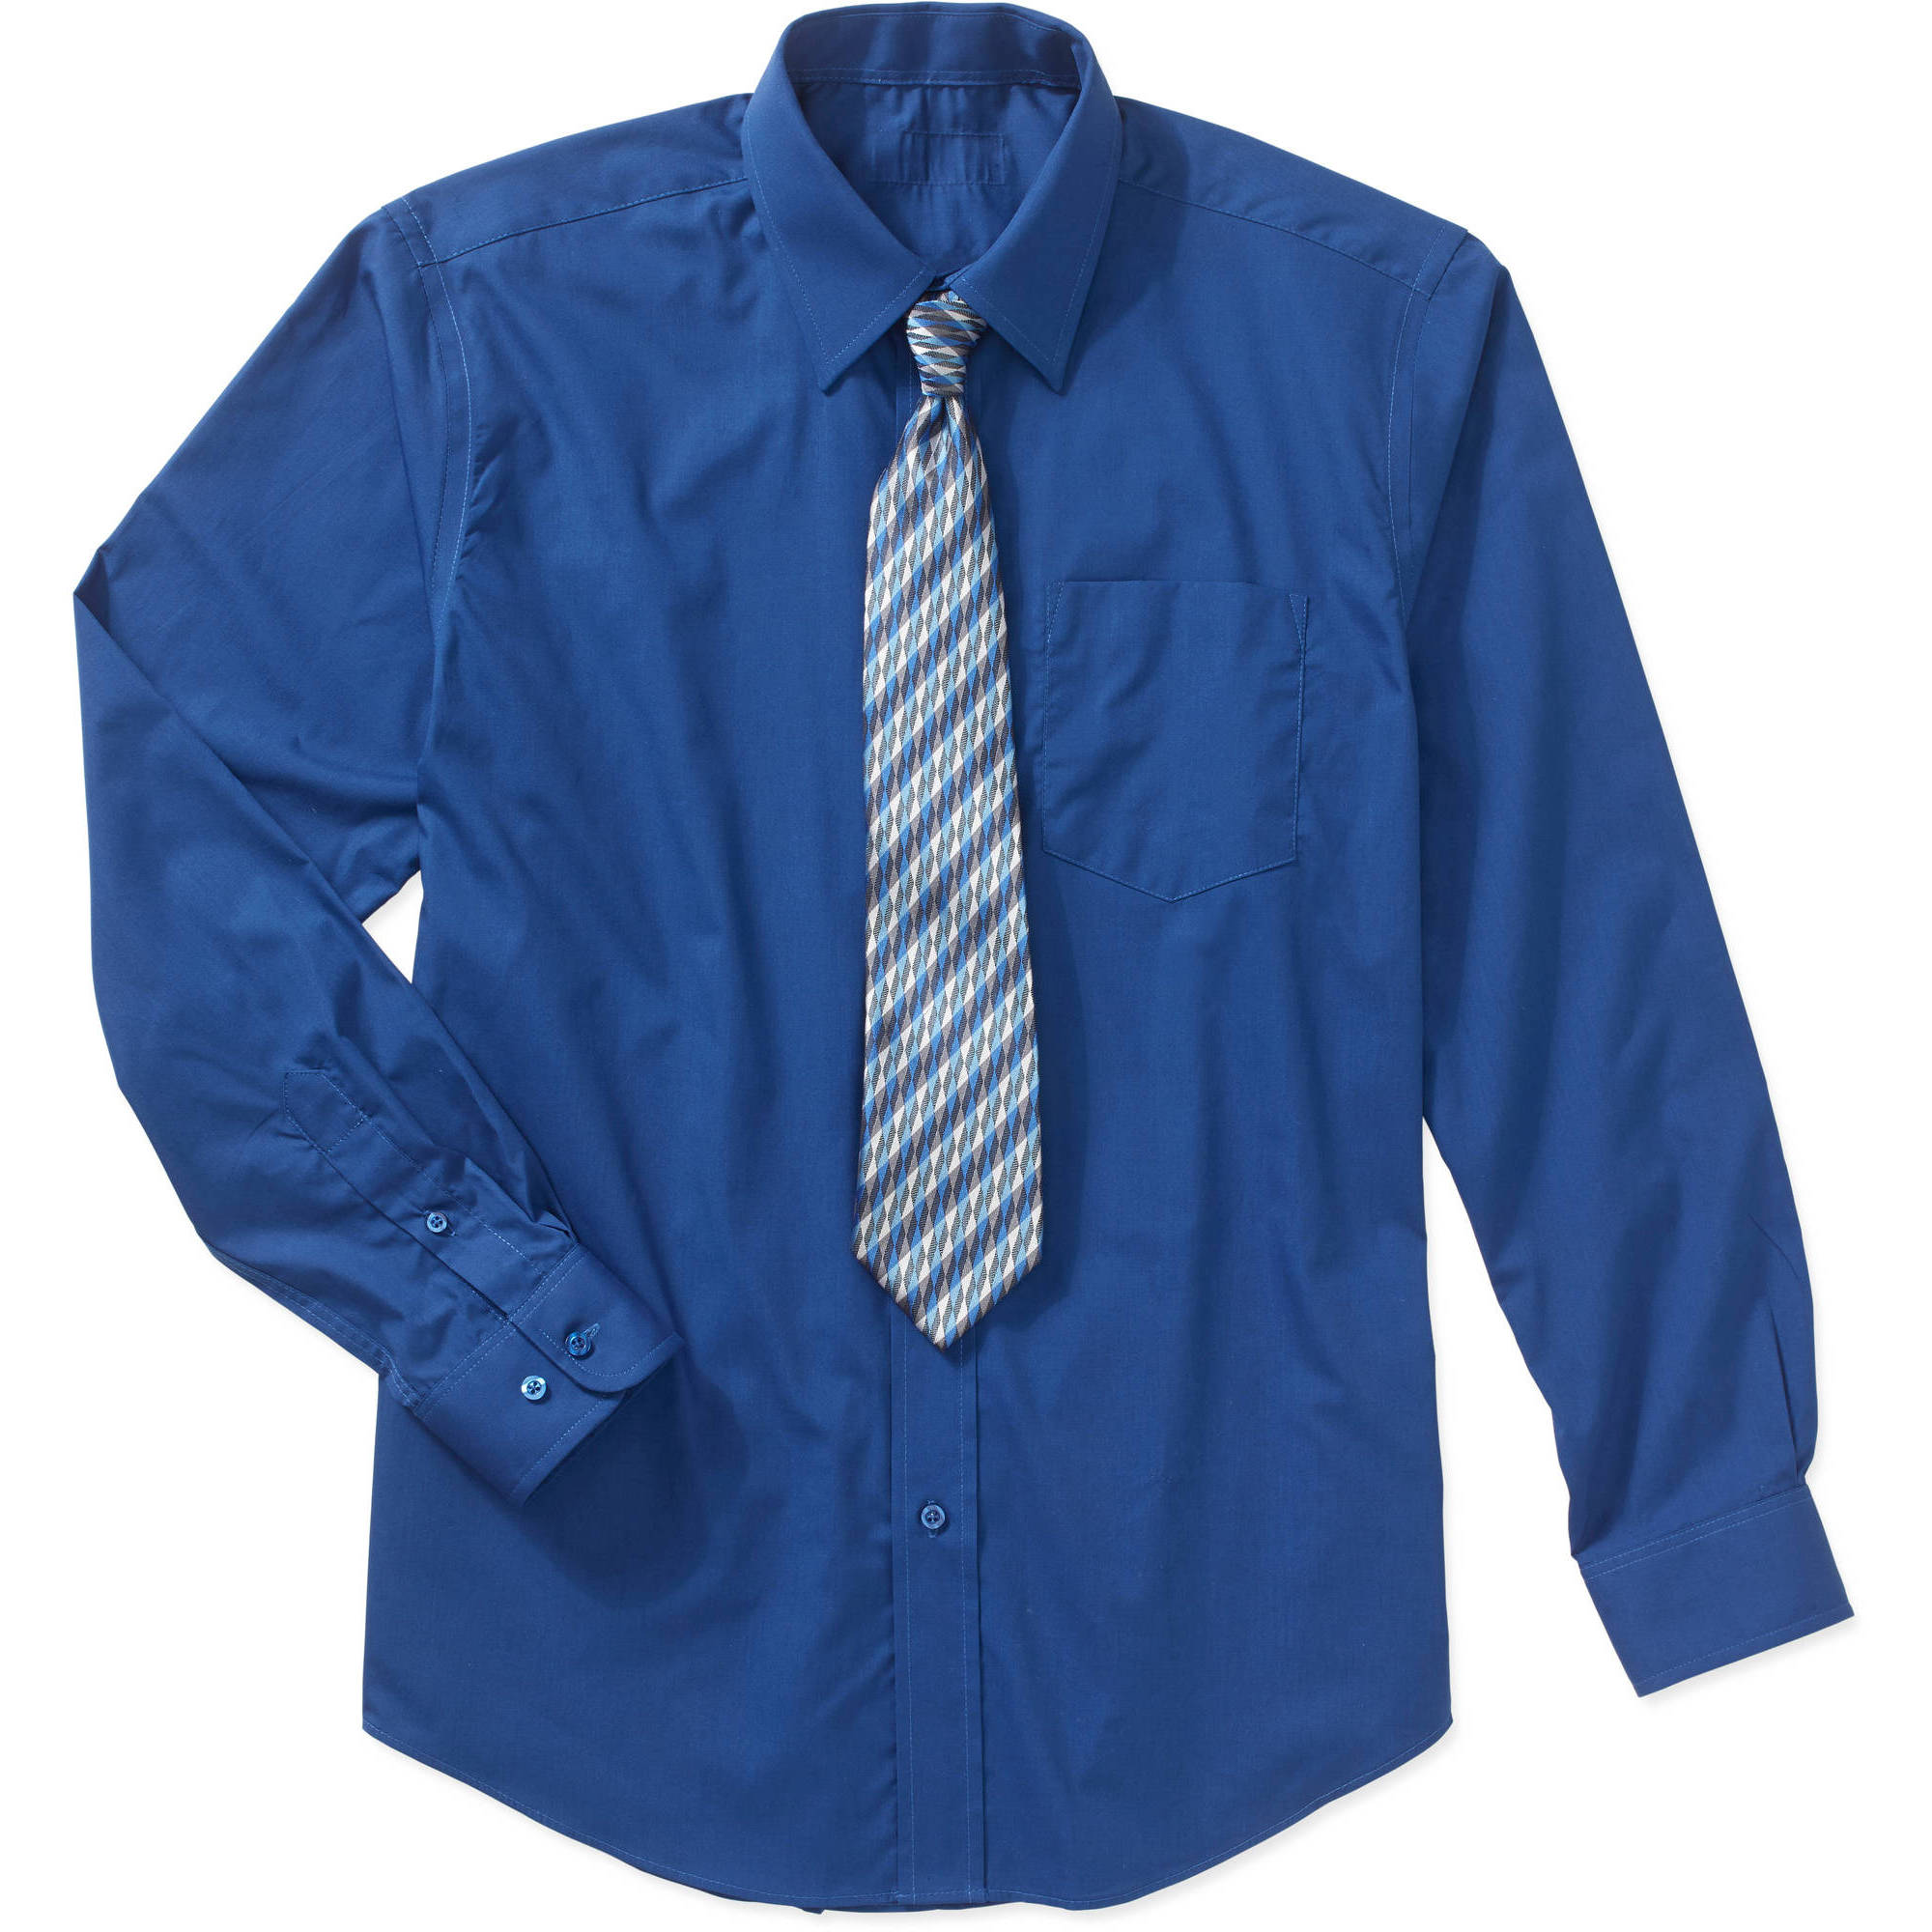 Men's Packaged Dress Shirt-Tie Set